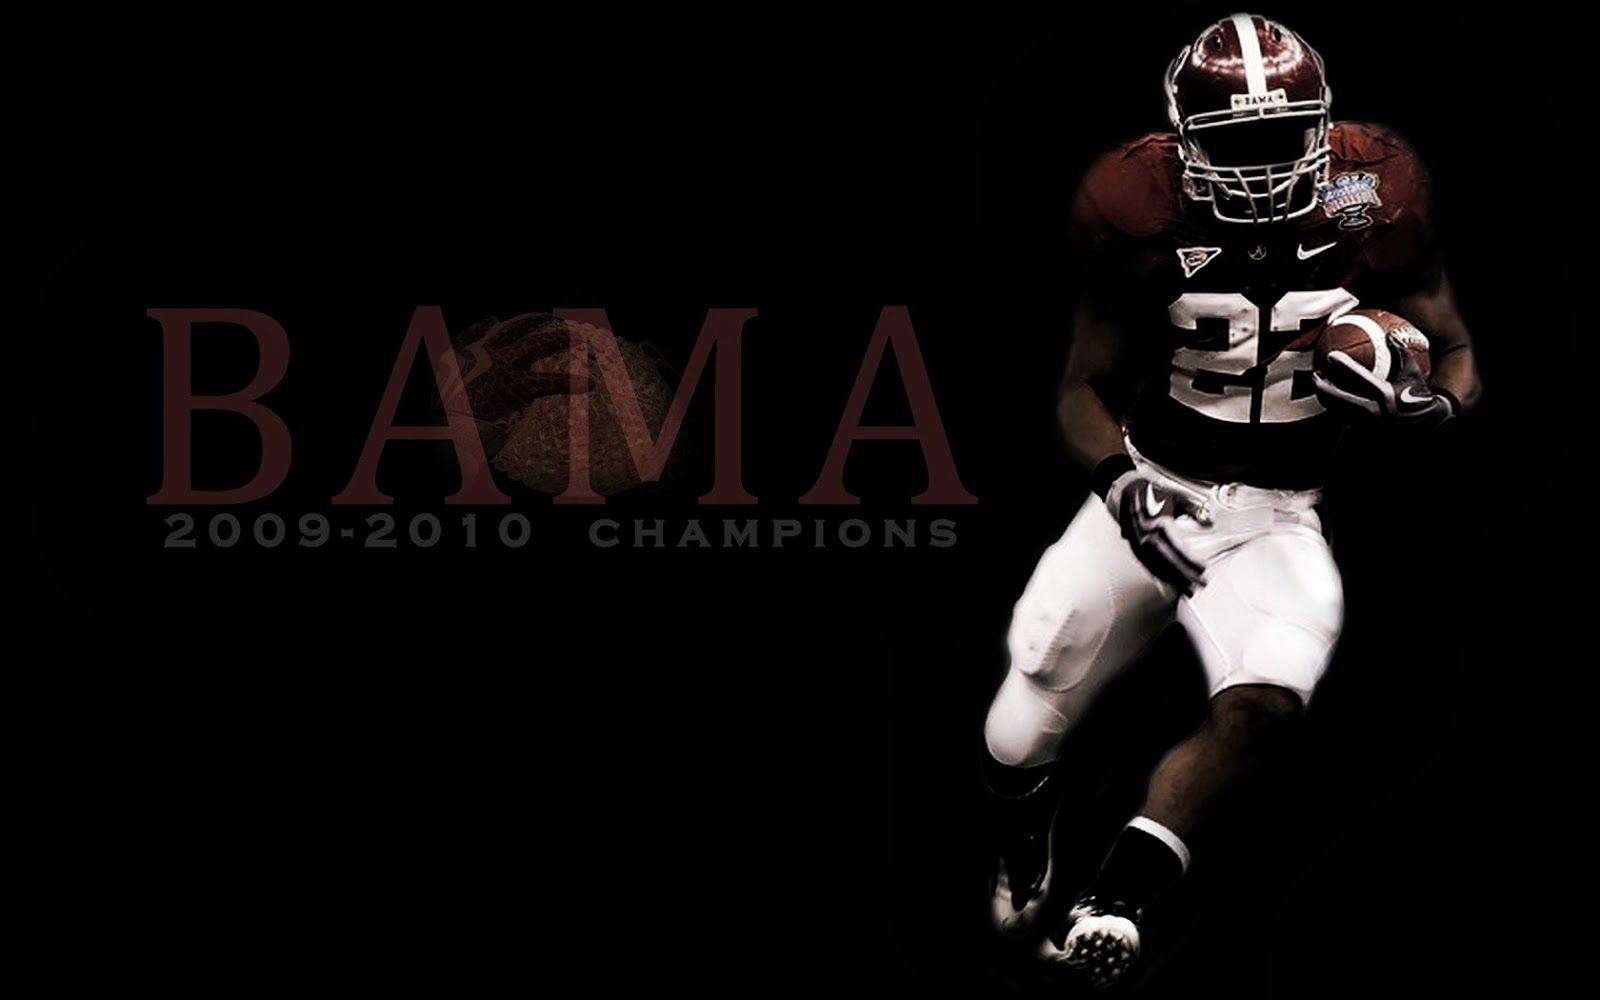 Alabama Crimson Tide Wallpaper Alabama Crimson Tide Football 1600 1000 Alabama Football Pic Alabama Football Team Football Wallpaper Alabama Football Pictures